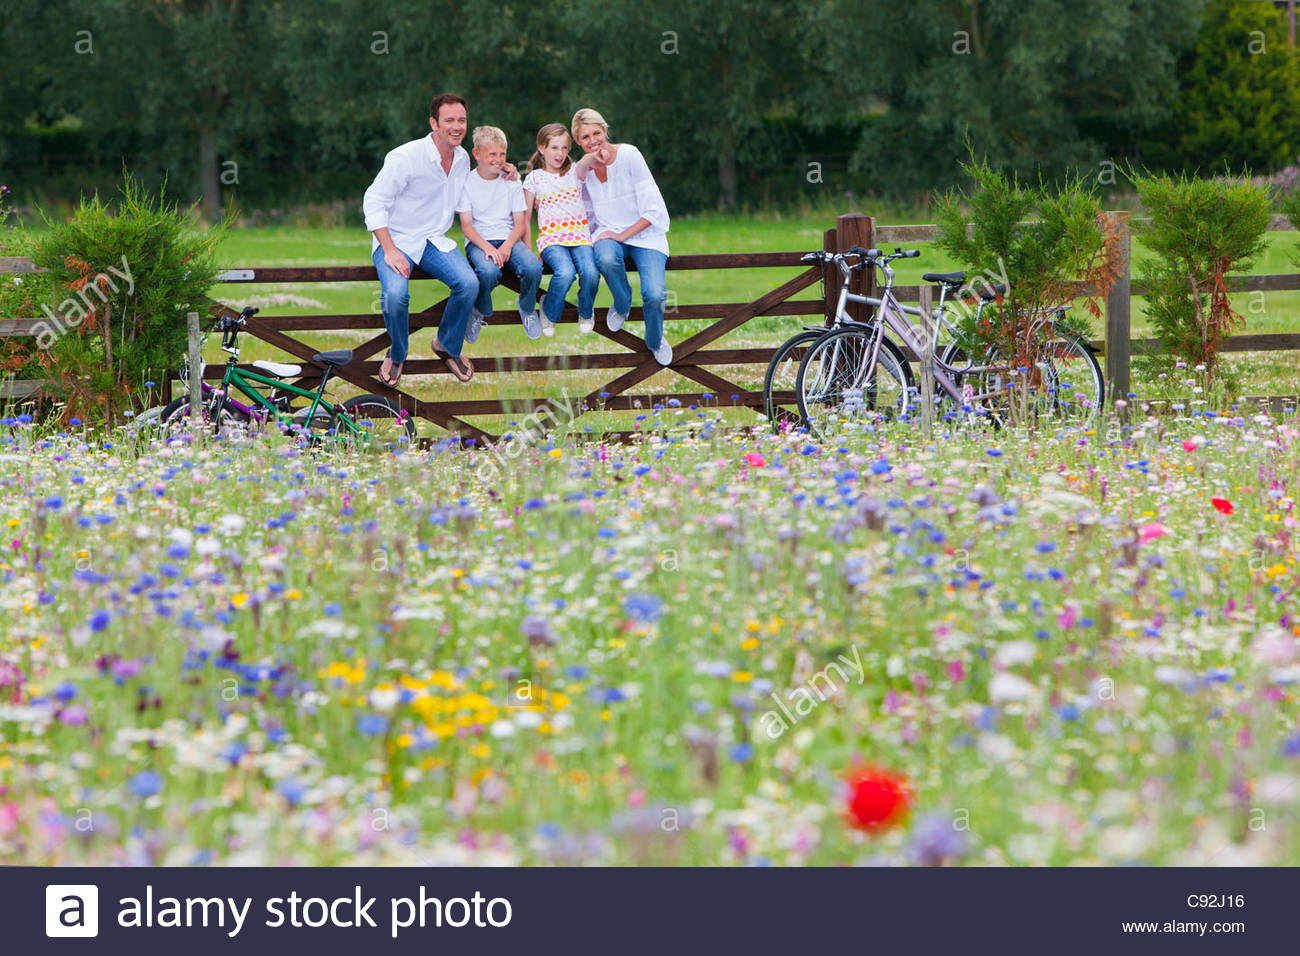 Family with bicycles sitting on fence in wildflower field Stock Photo